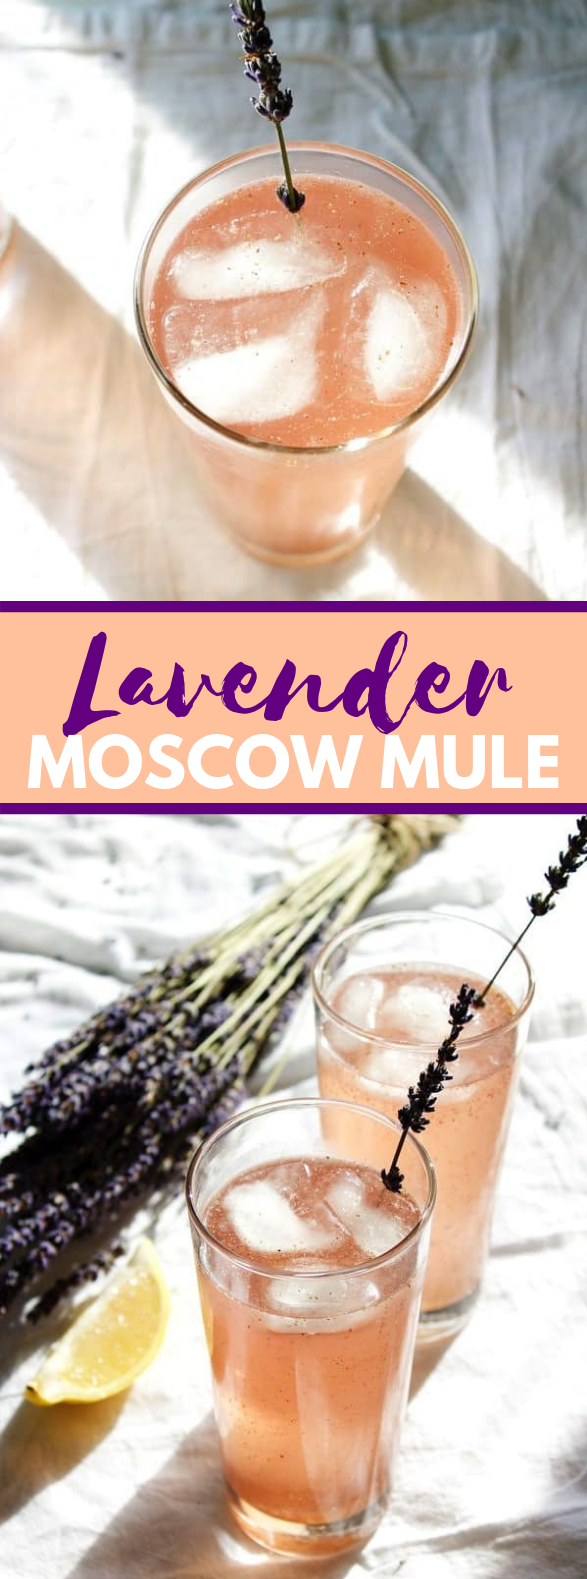 Lavender Moscow Mule #drinks #classicdrink